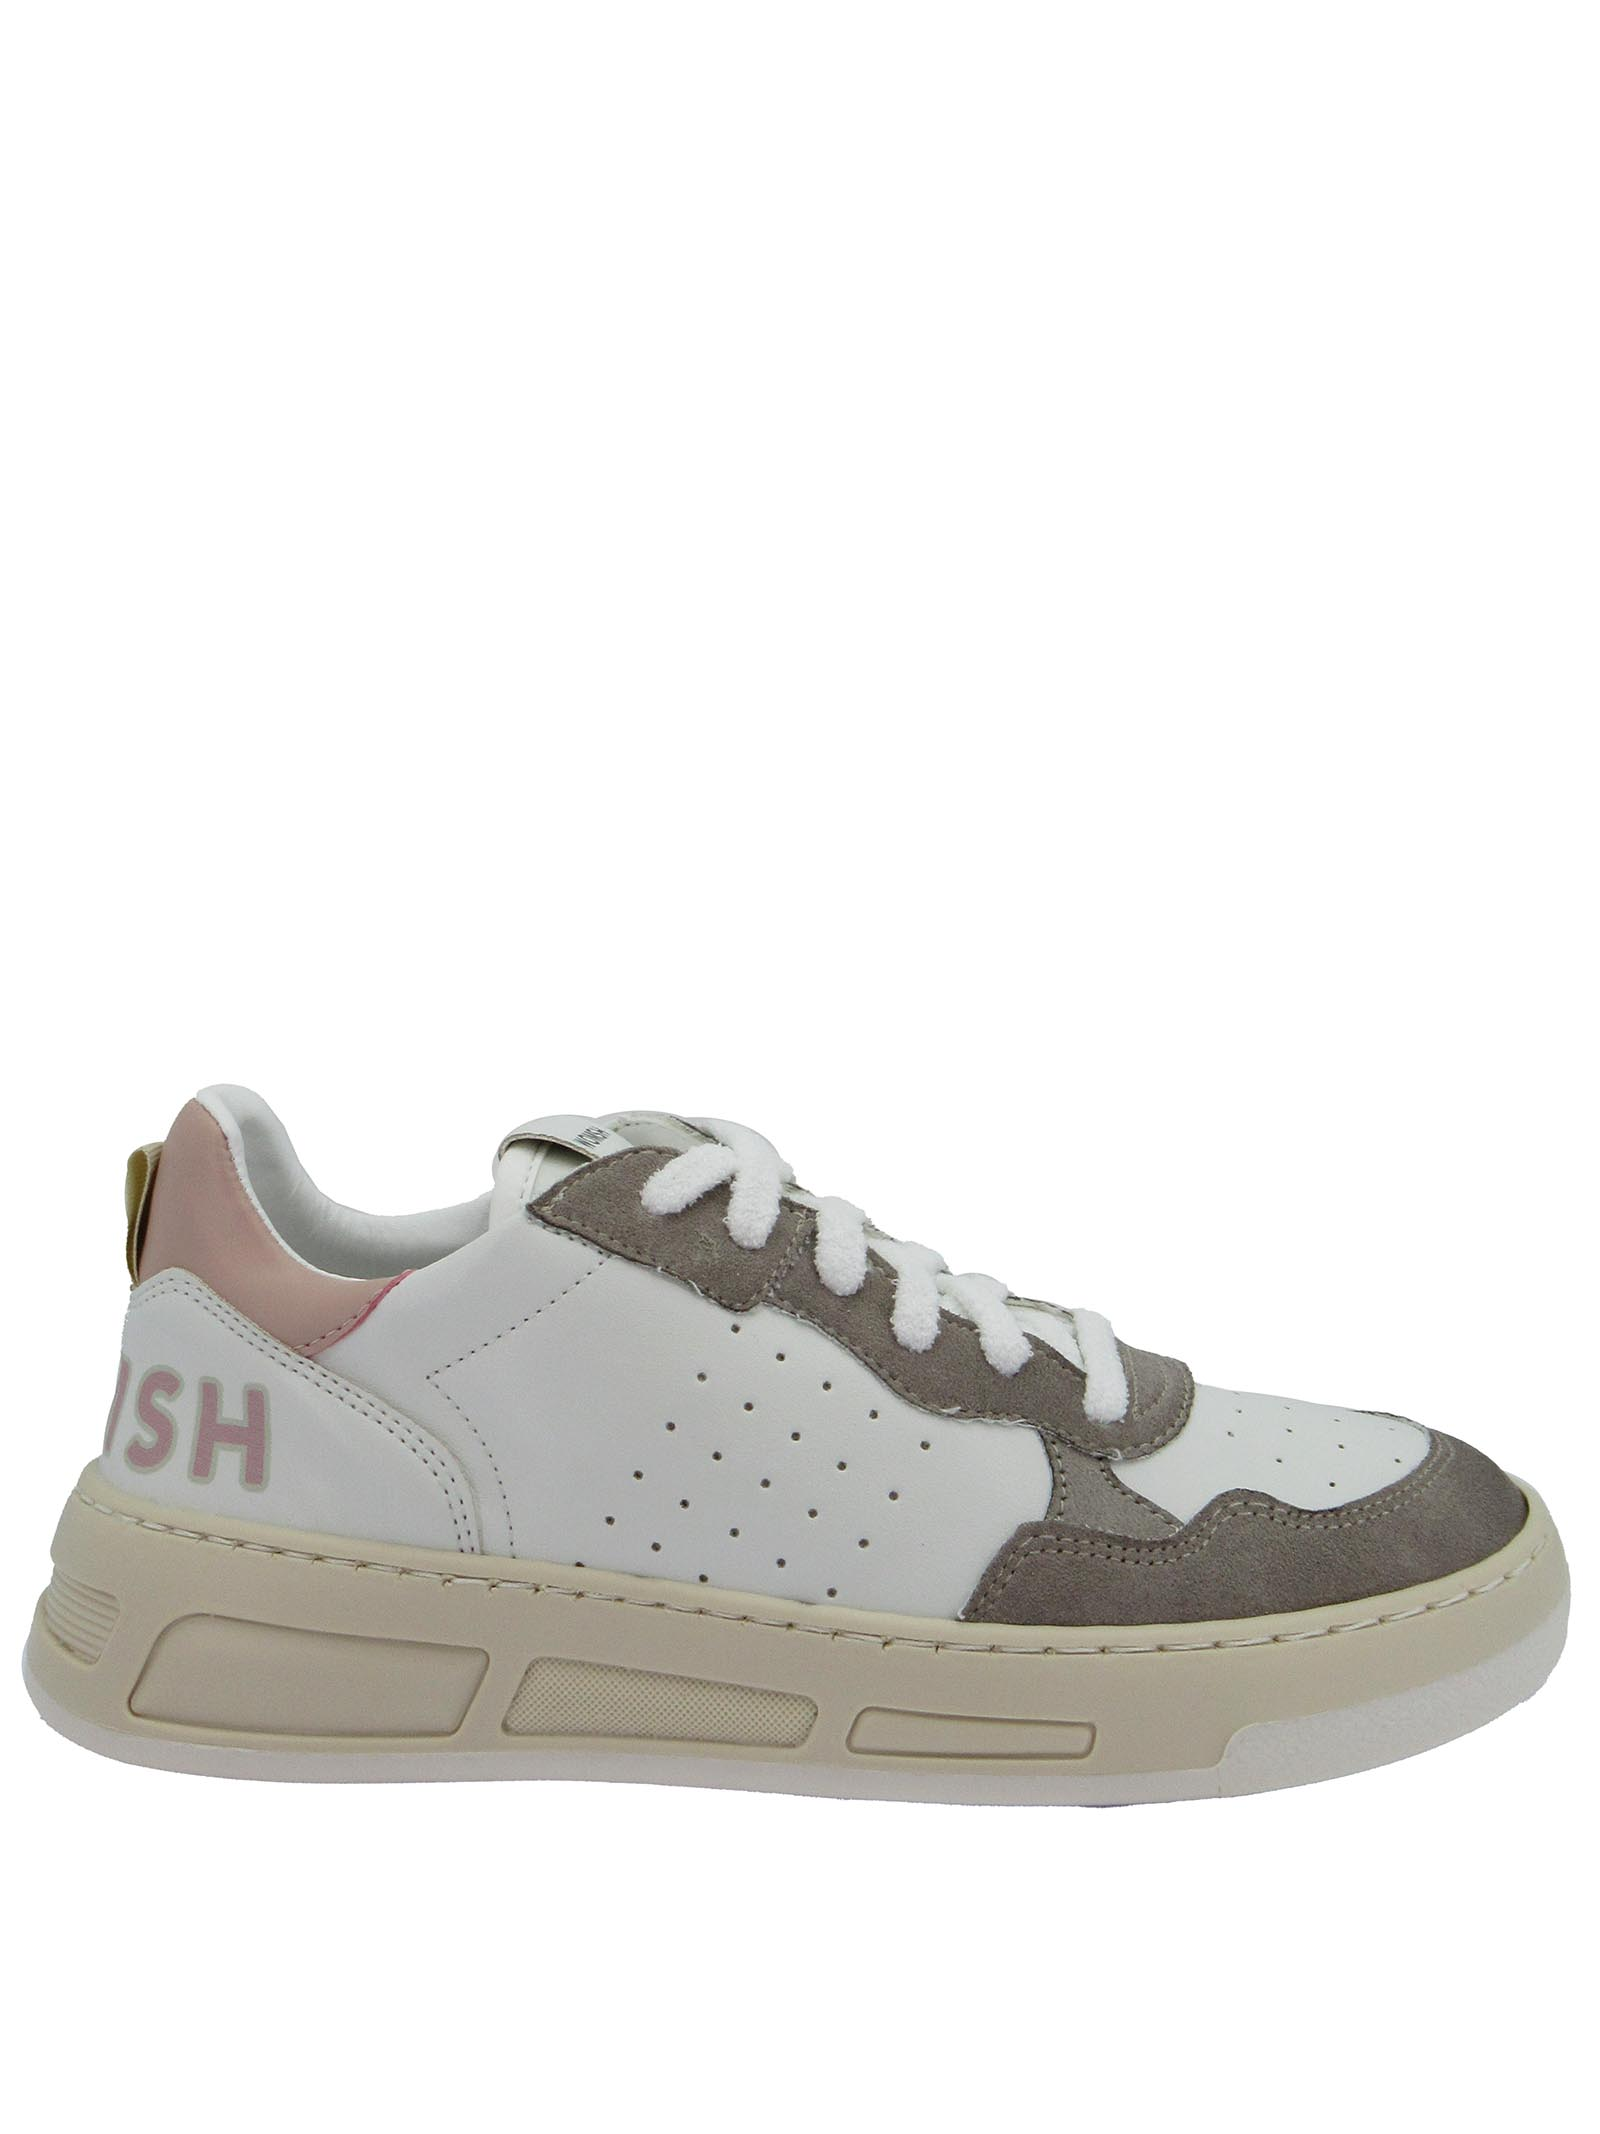 Women's Sneakers Laced Hyper in White Leather and Mud Suede Honey Rubber Sole Womsh | Sneakers | HYPER003